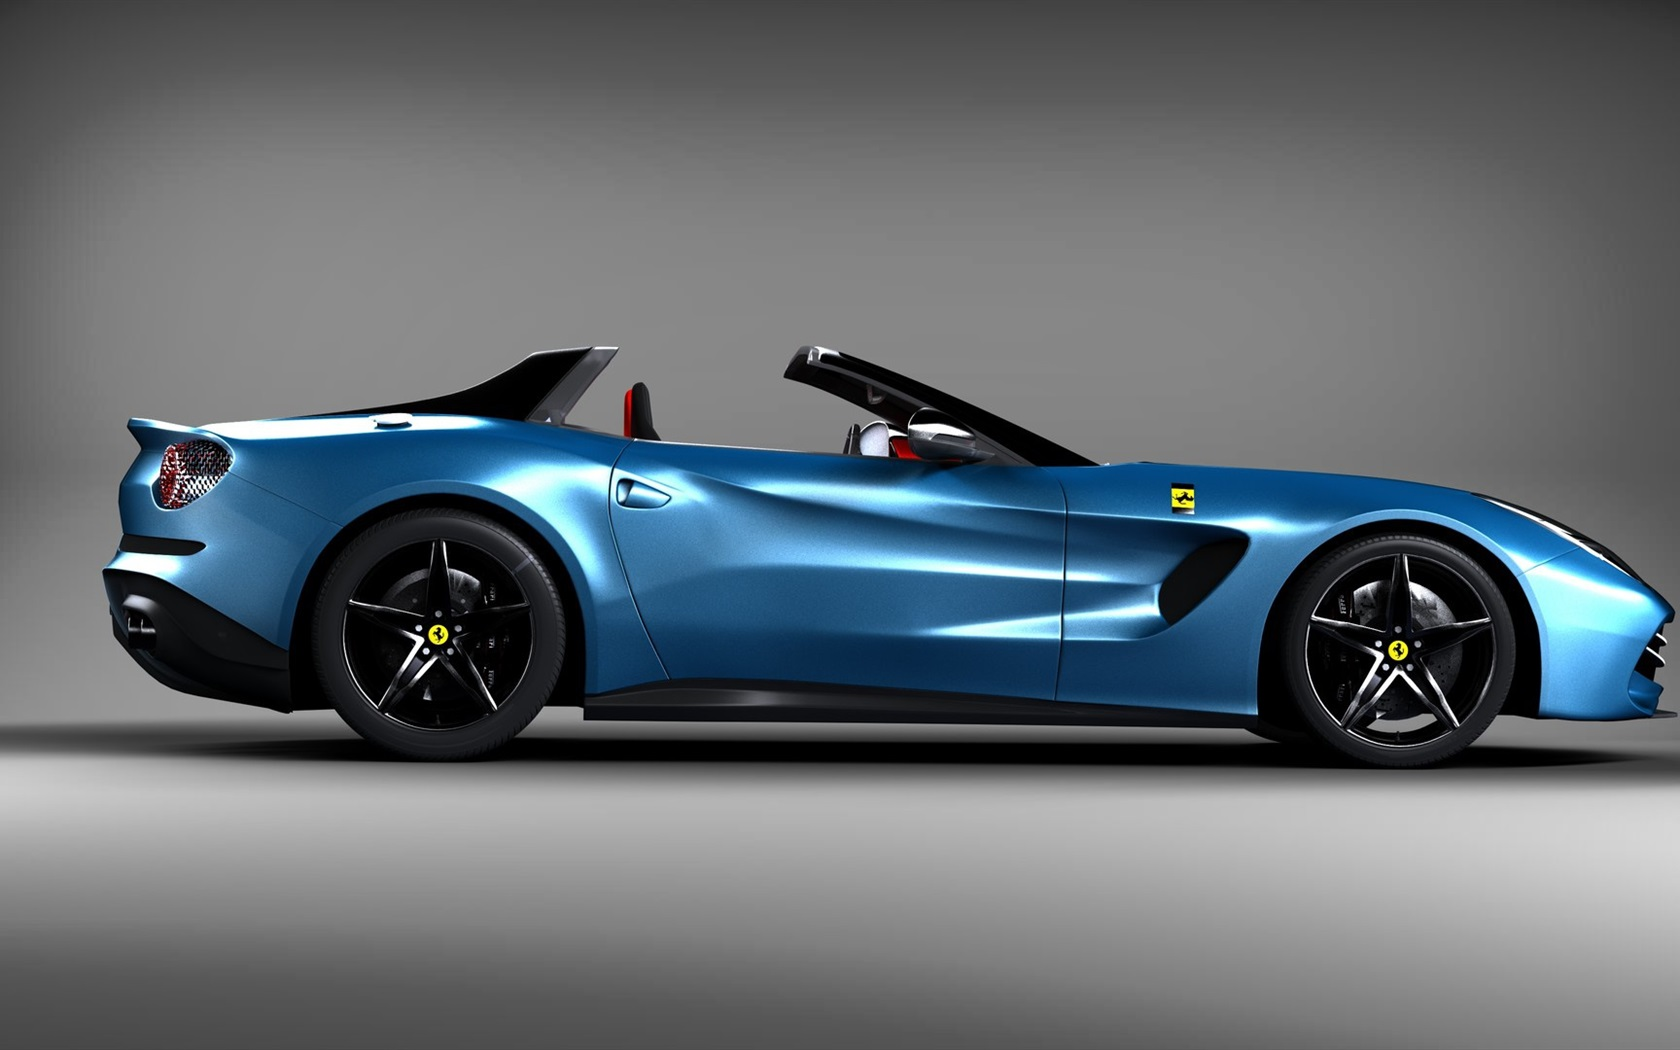 Download wallpaper 1680x1050 ferrari blue car side view sports car hd background - Car side view wallpaper ...